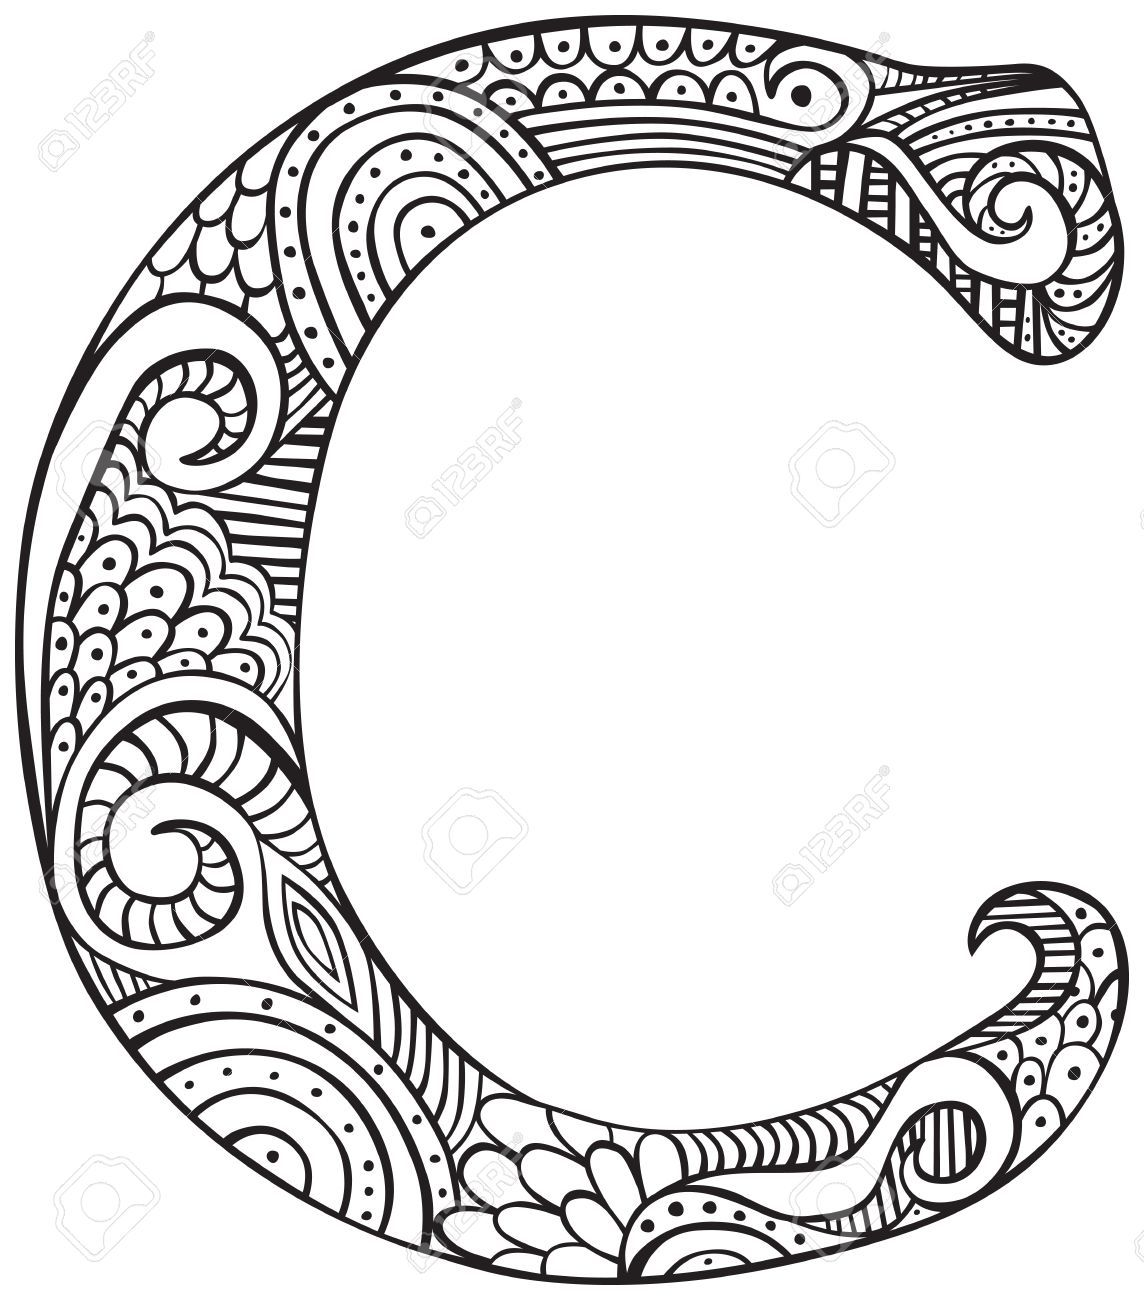 Stock Vector Letter C Coloring Pages Coloring Letters Coloring